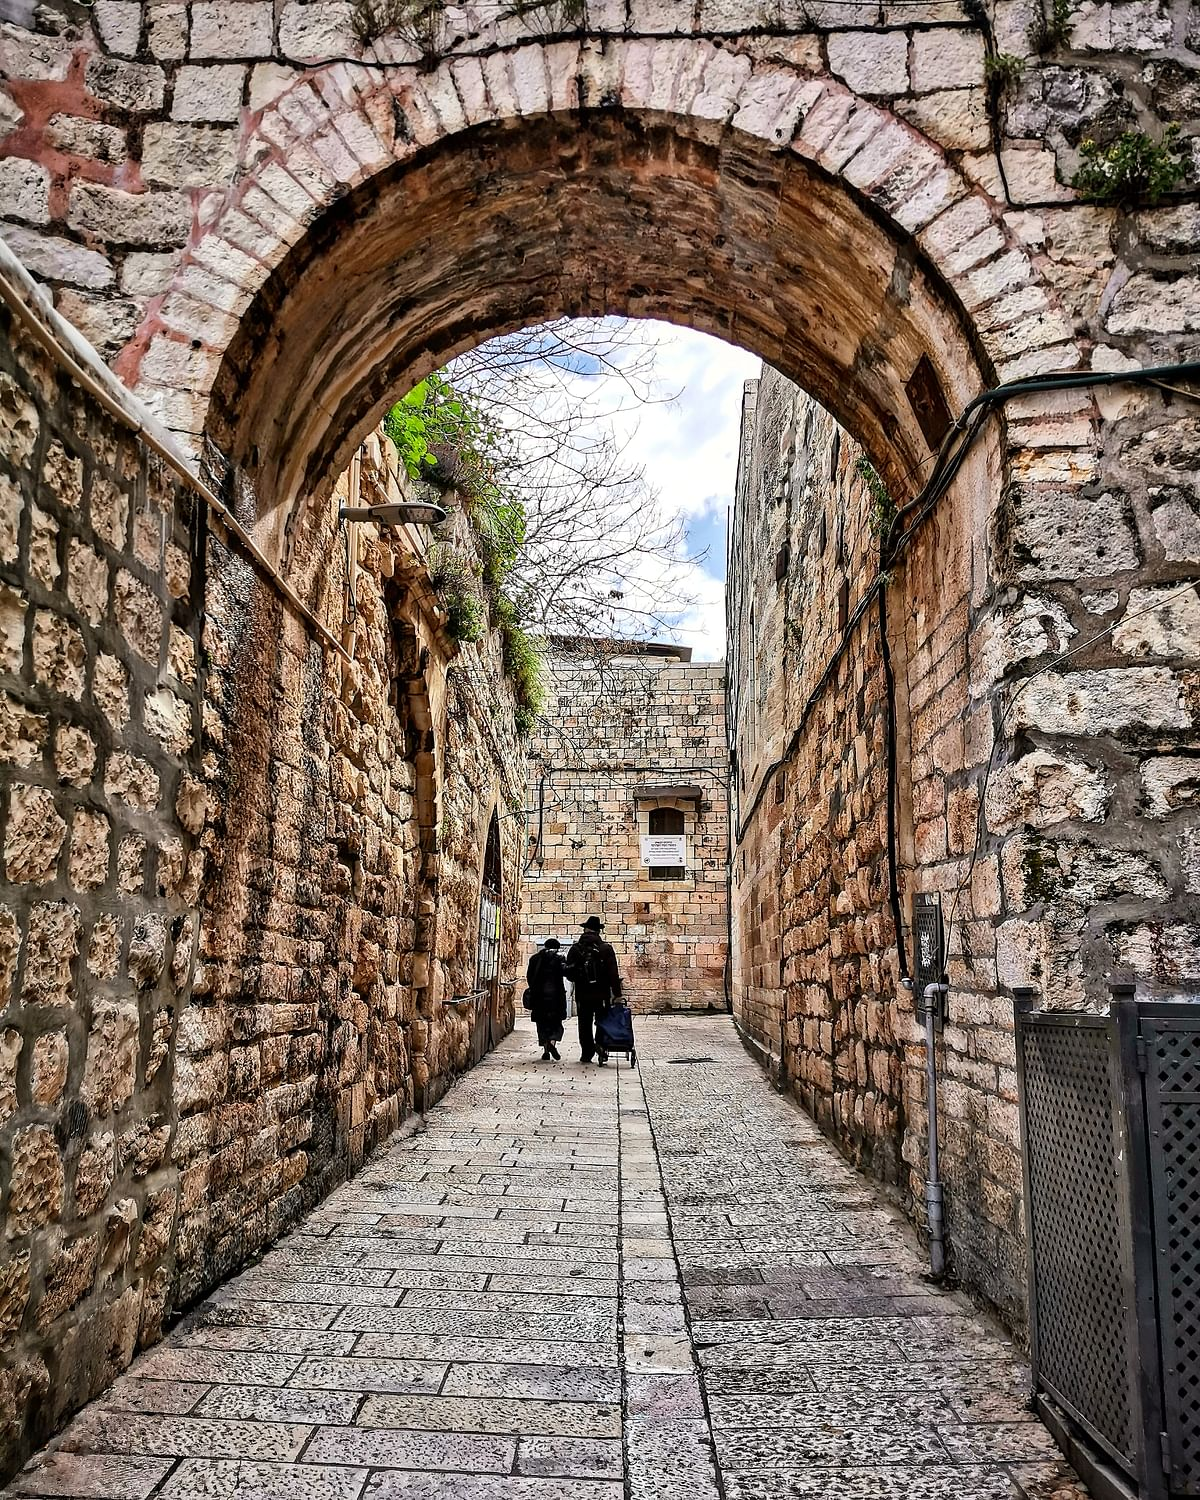 One of the many atmospheric alleys in Jerusalem's Old City.